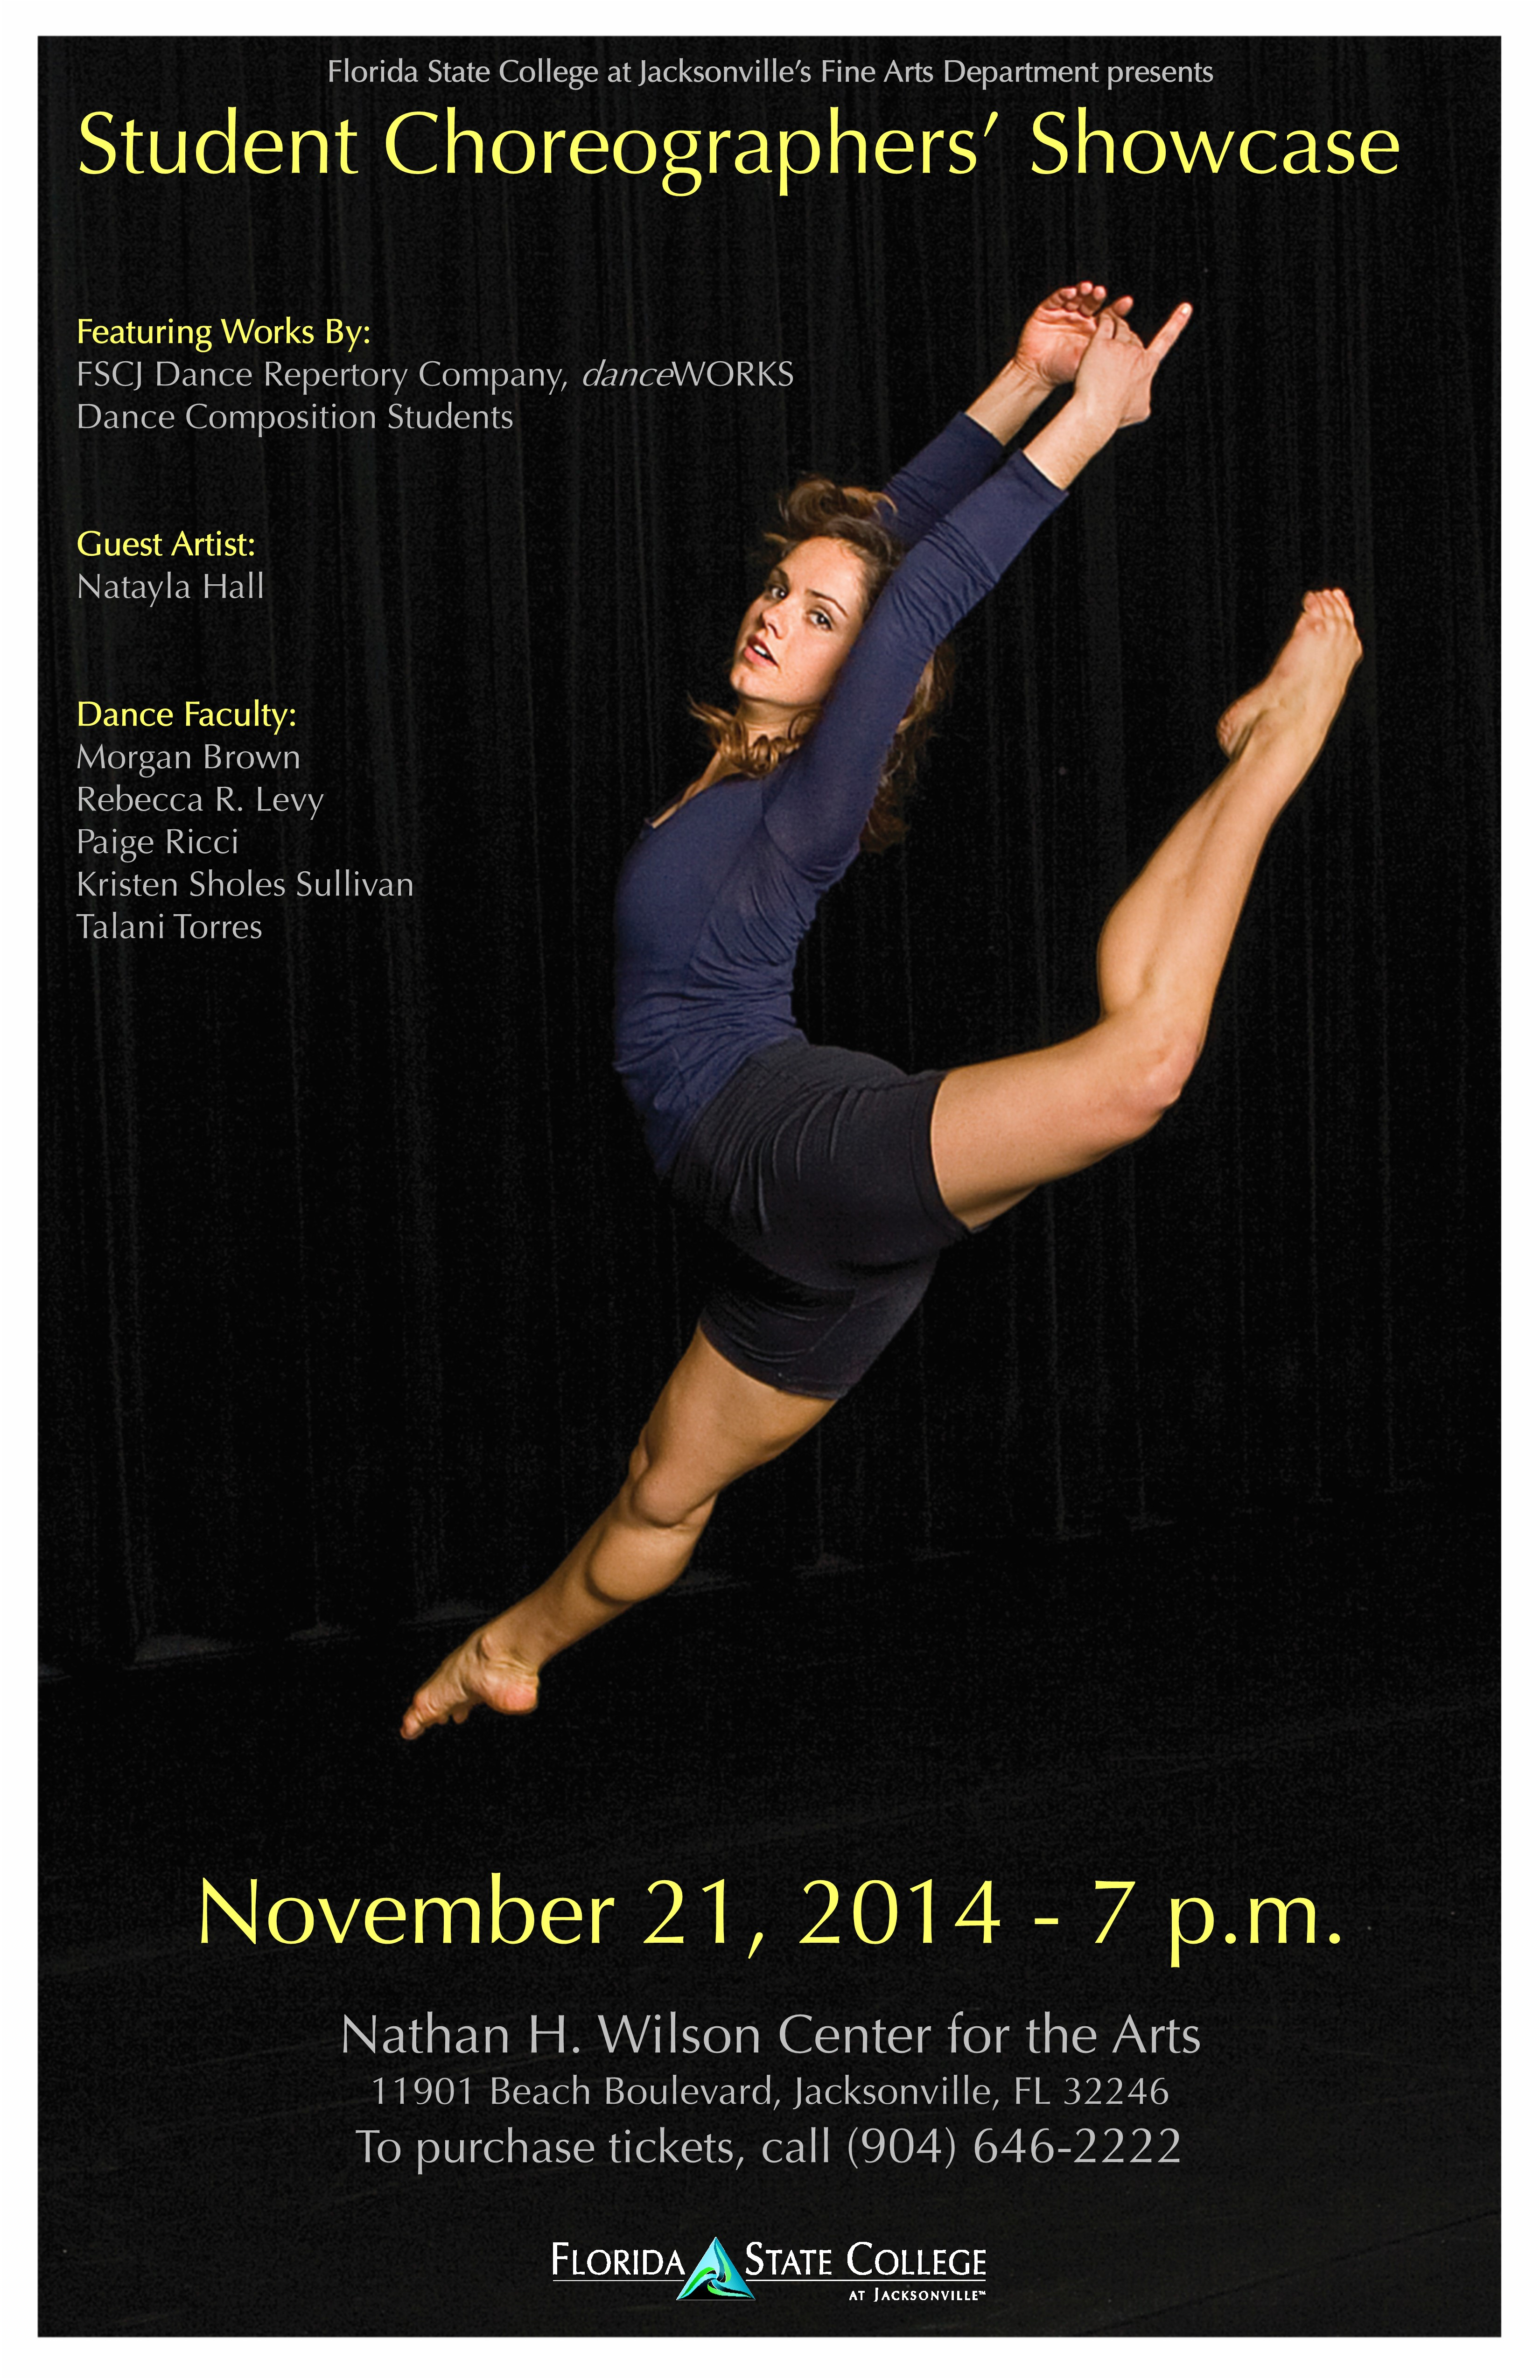 2014 Student Choreography Concert